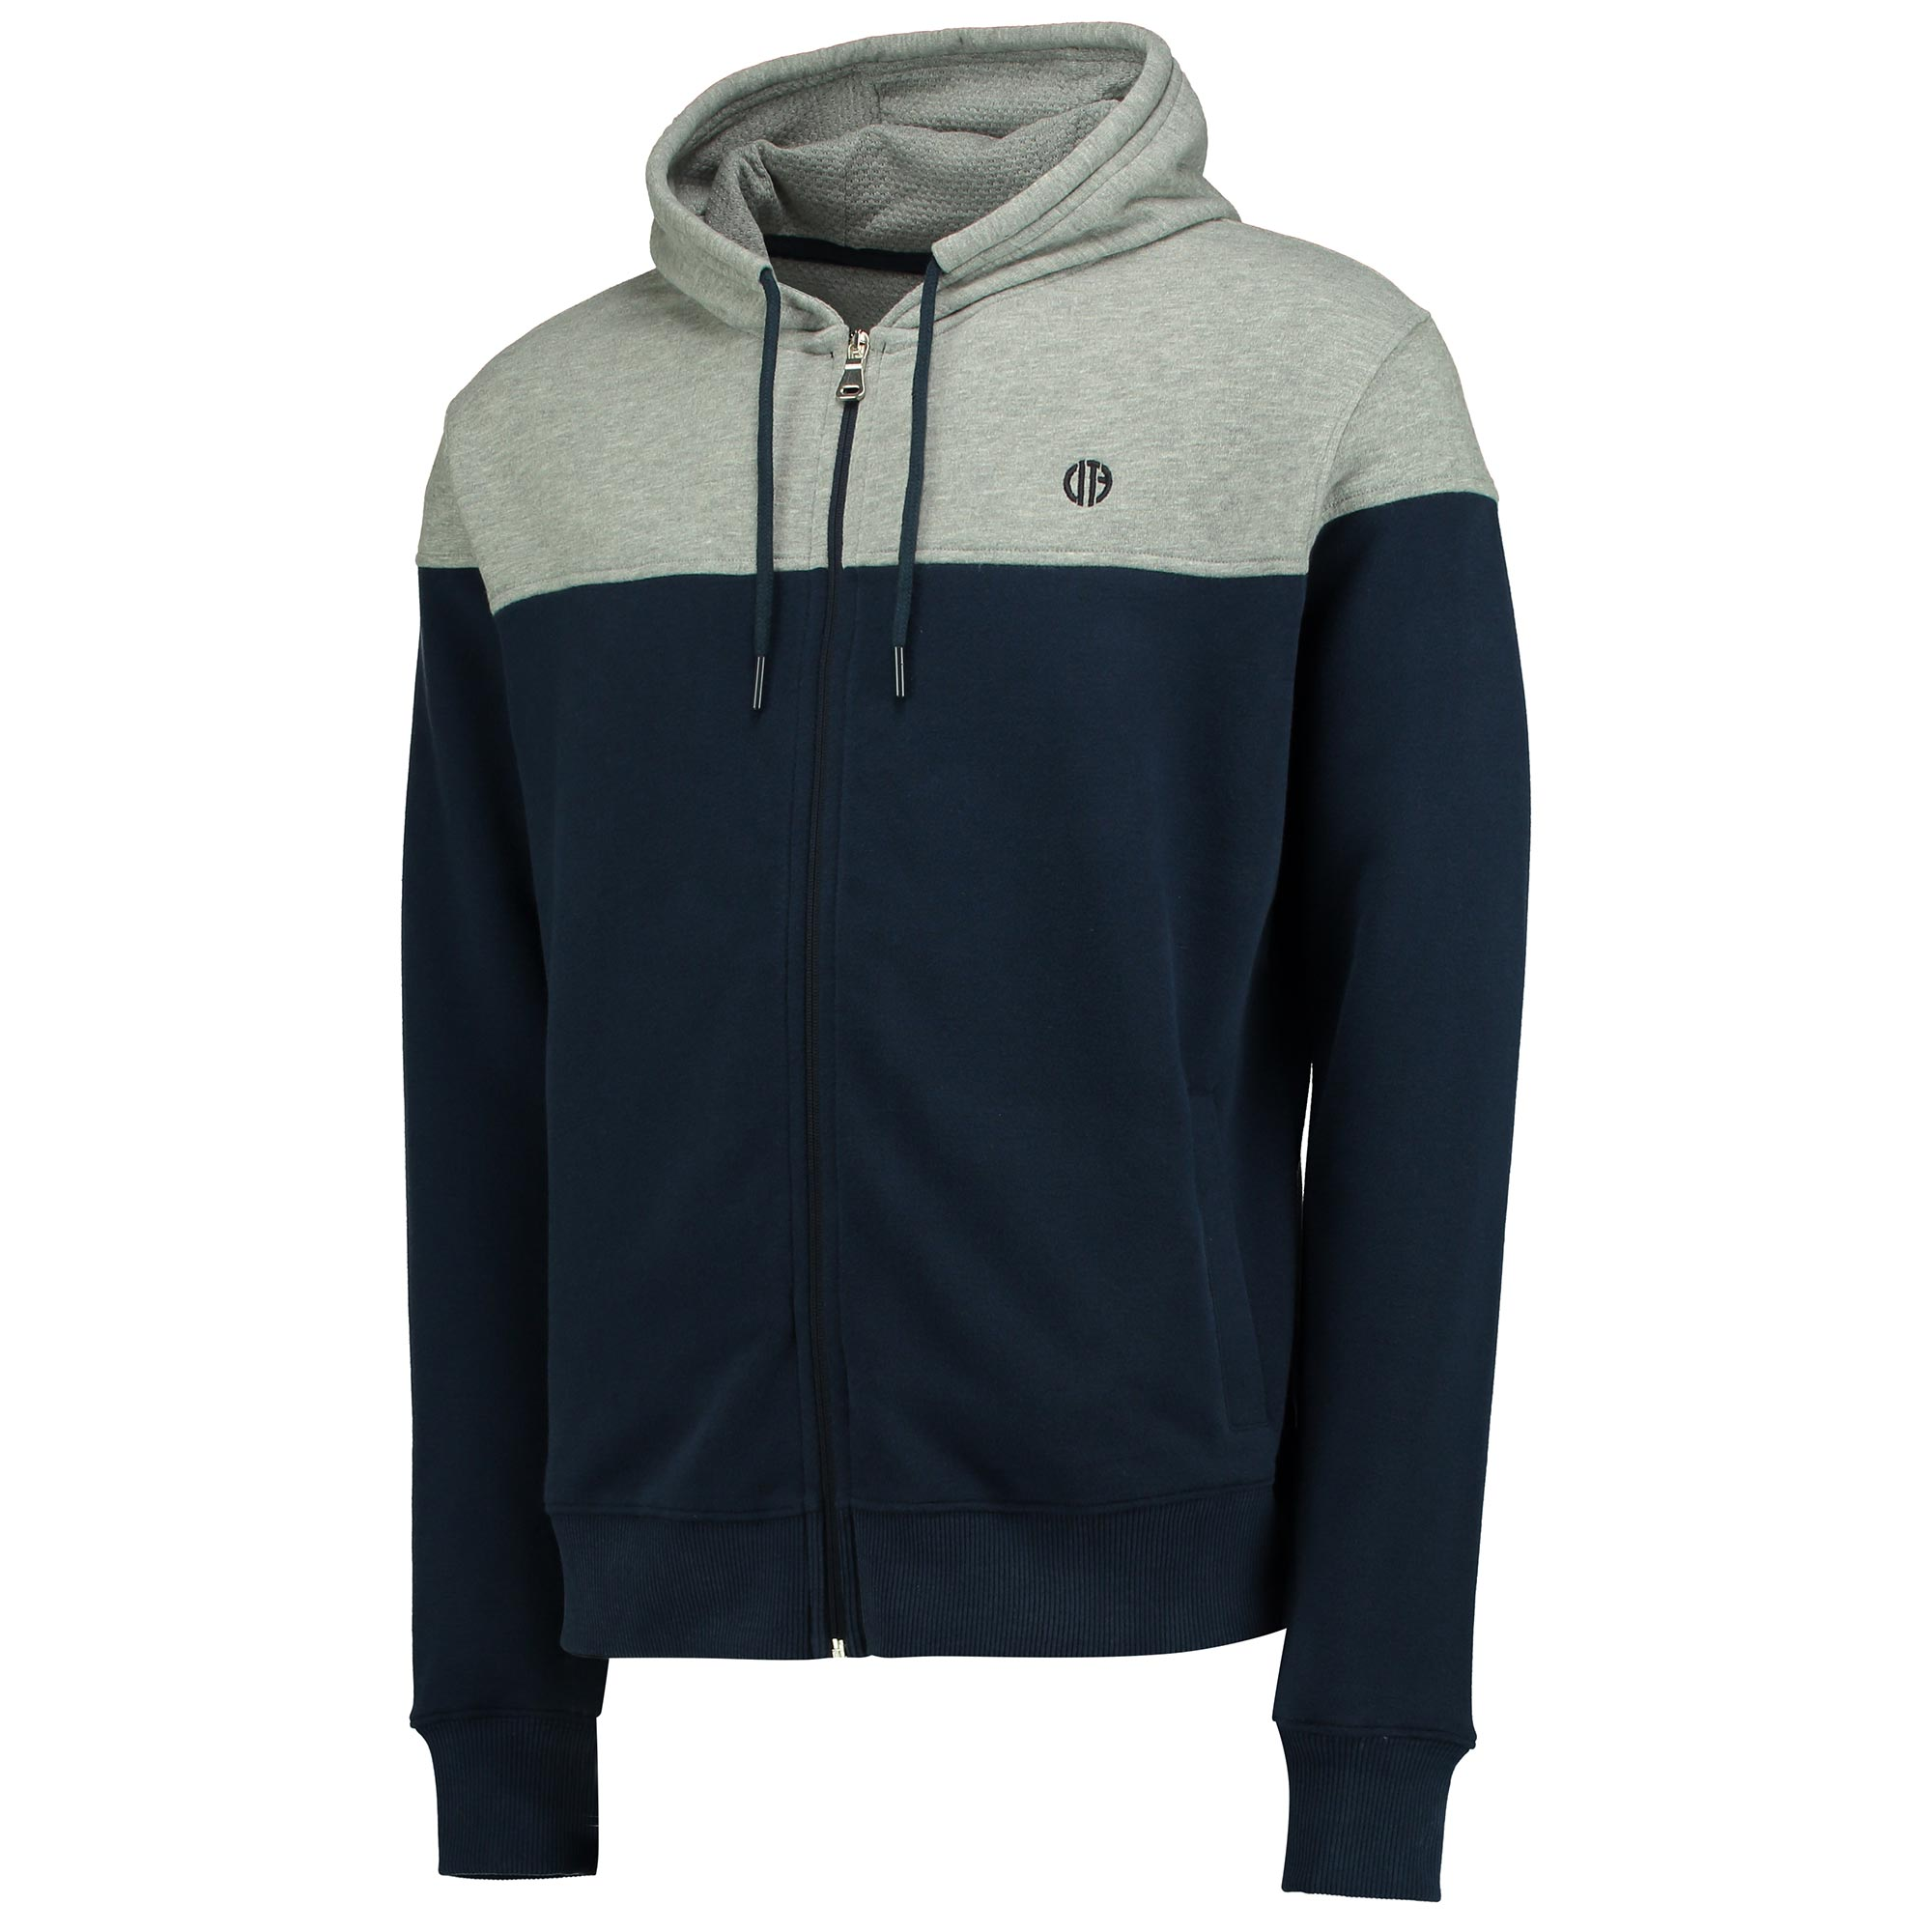 Manchester City Terrace Full Zip Hoodie - Navy/Grey Marl